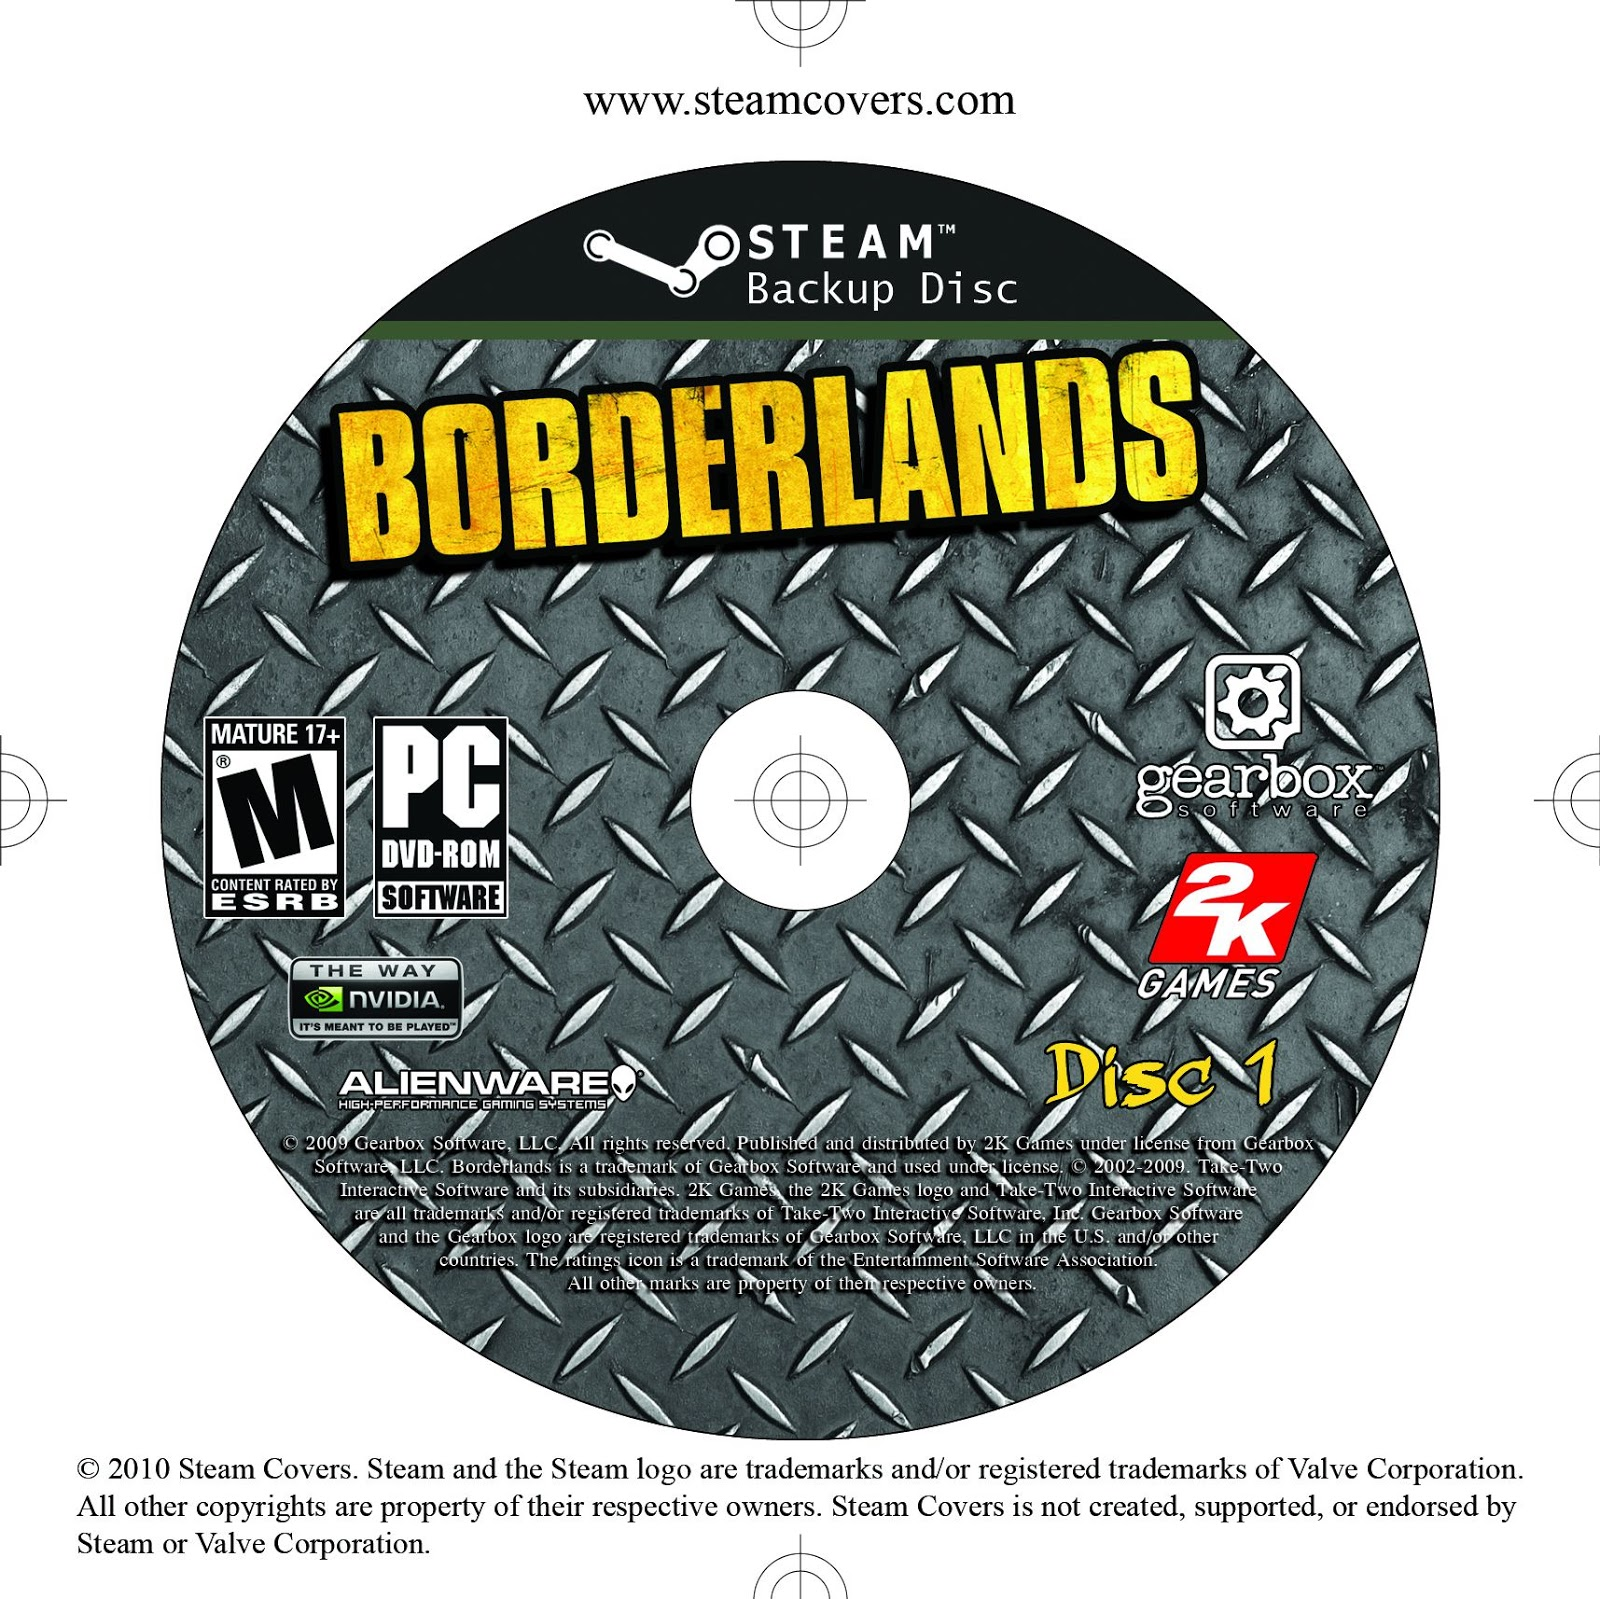 Label Borderlands Disc 1 PC